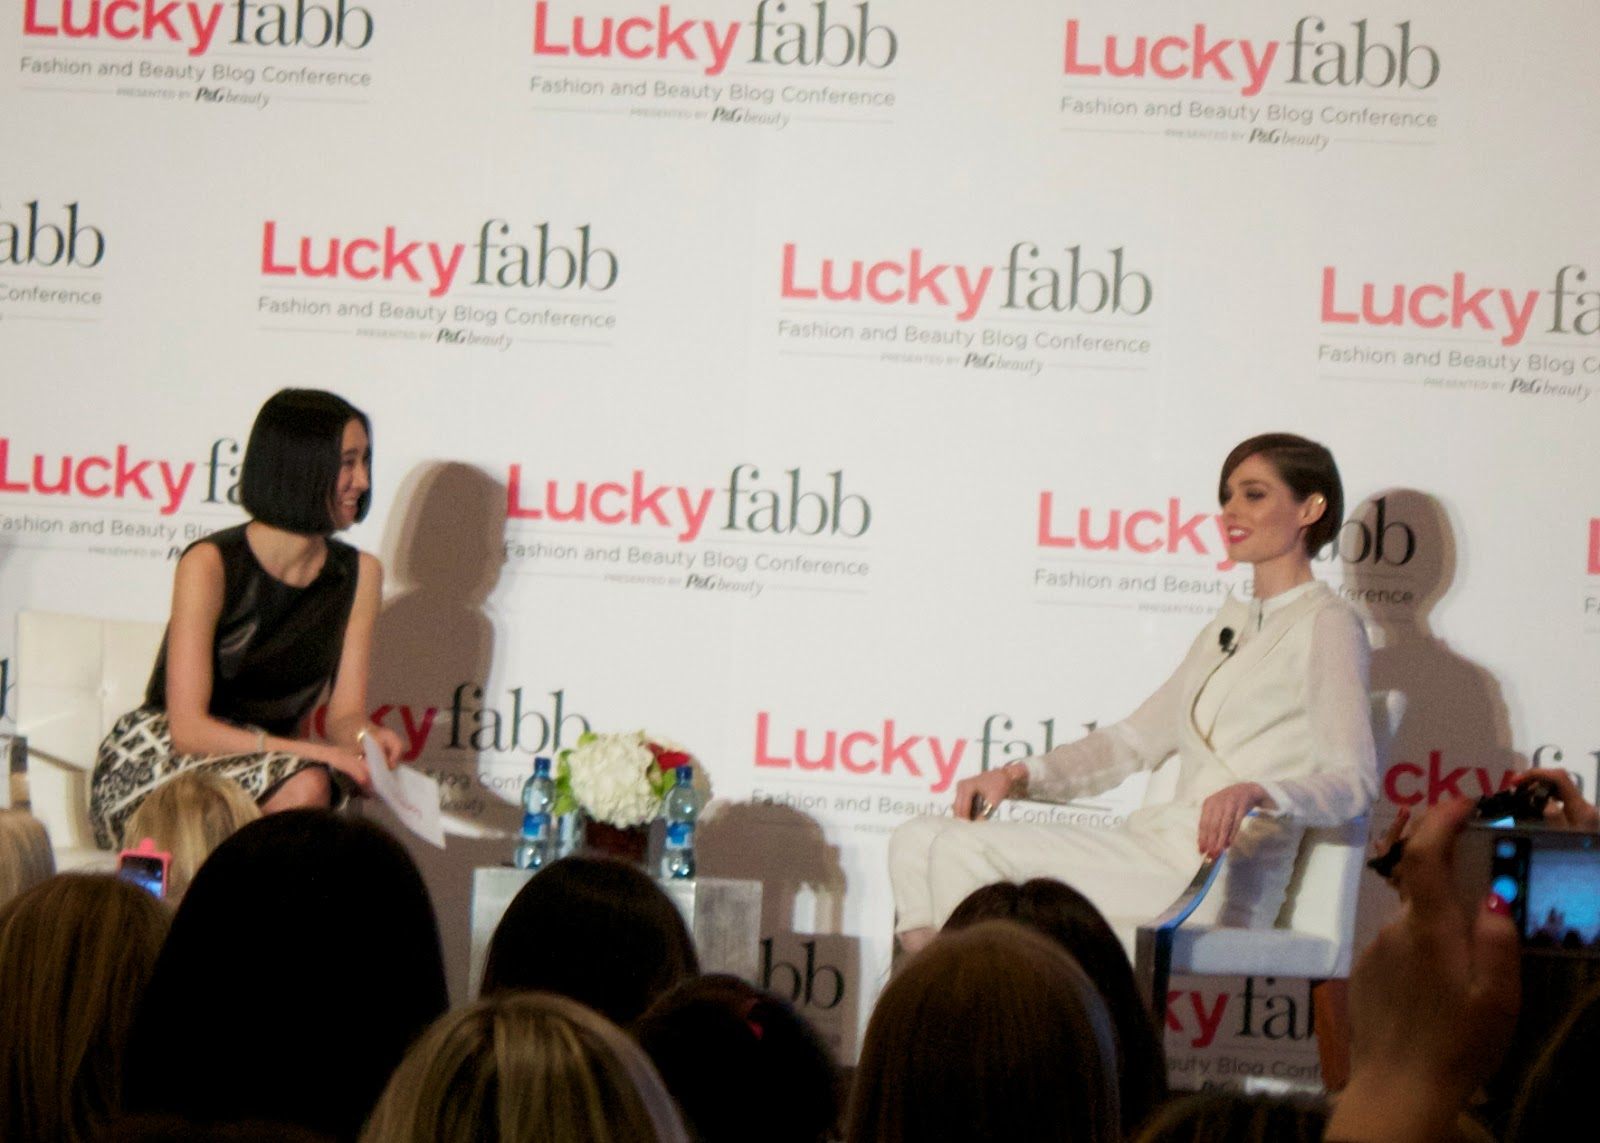 Coco rocha at luckyfabb, Coco rocha doesn't like selfies, coco rocha in white